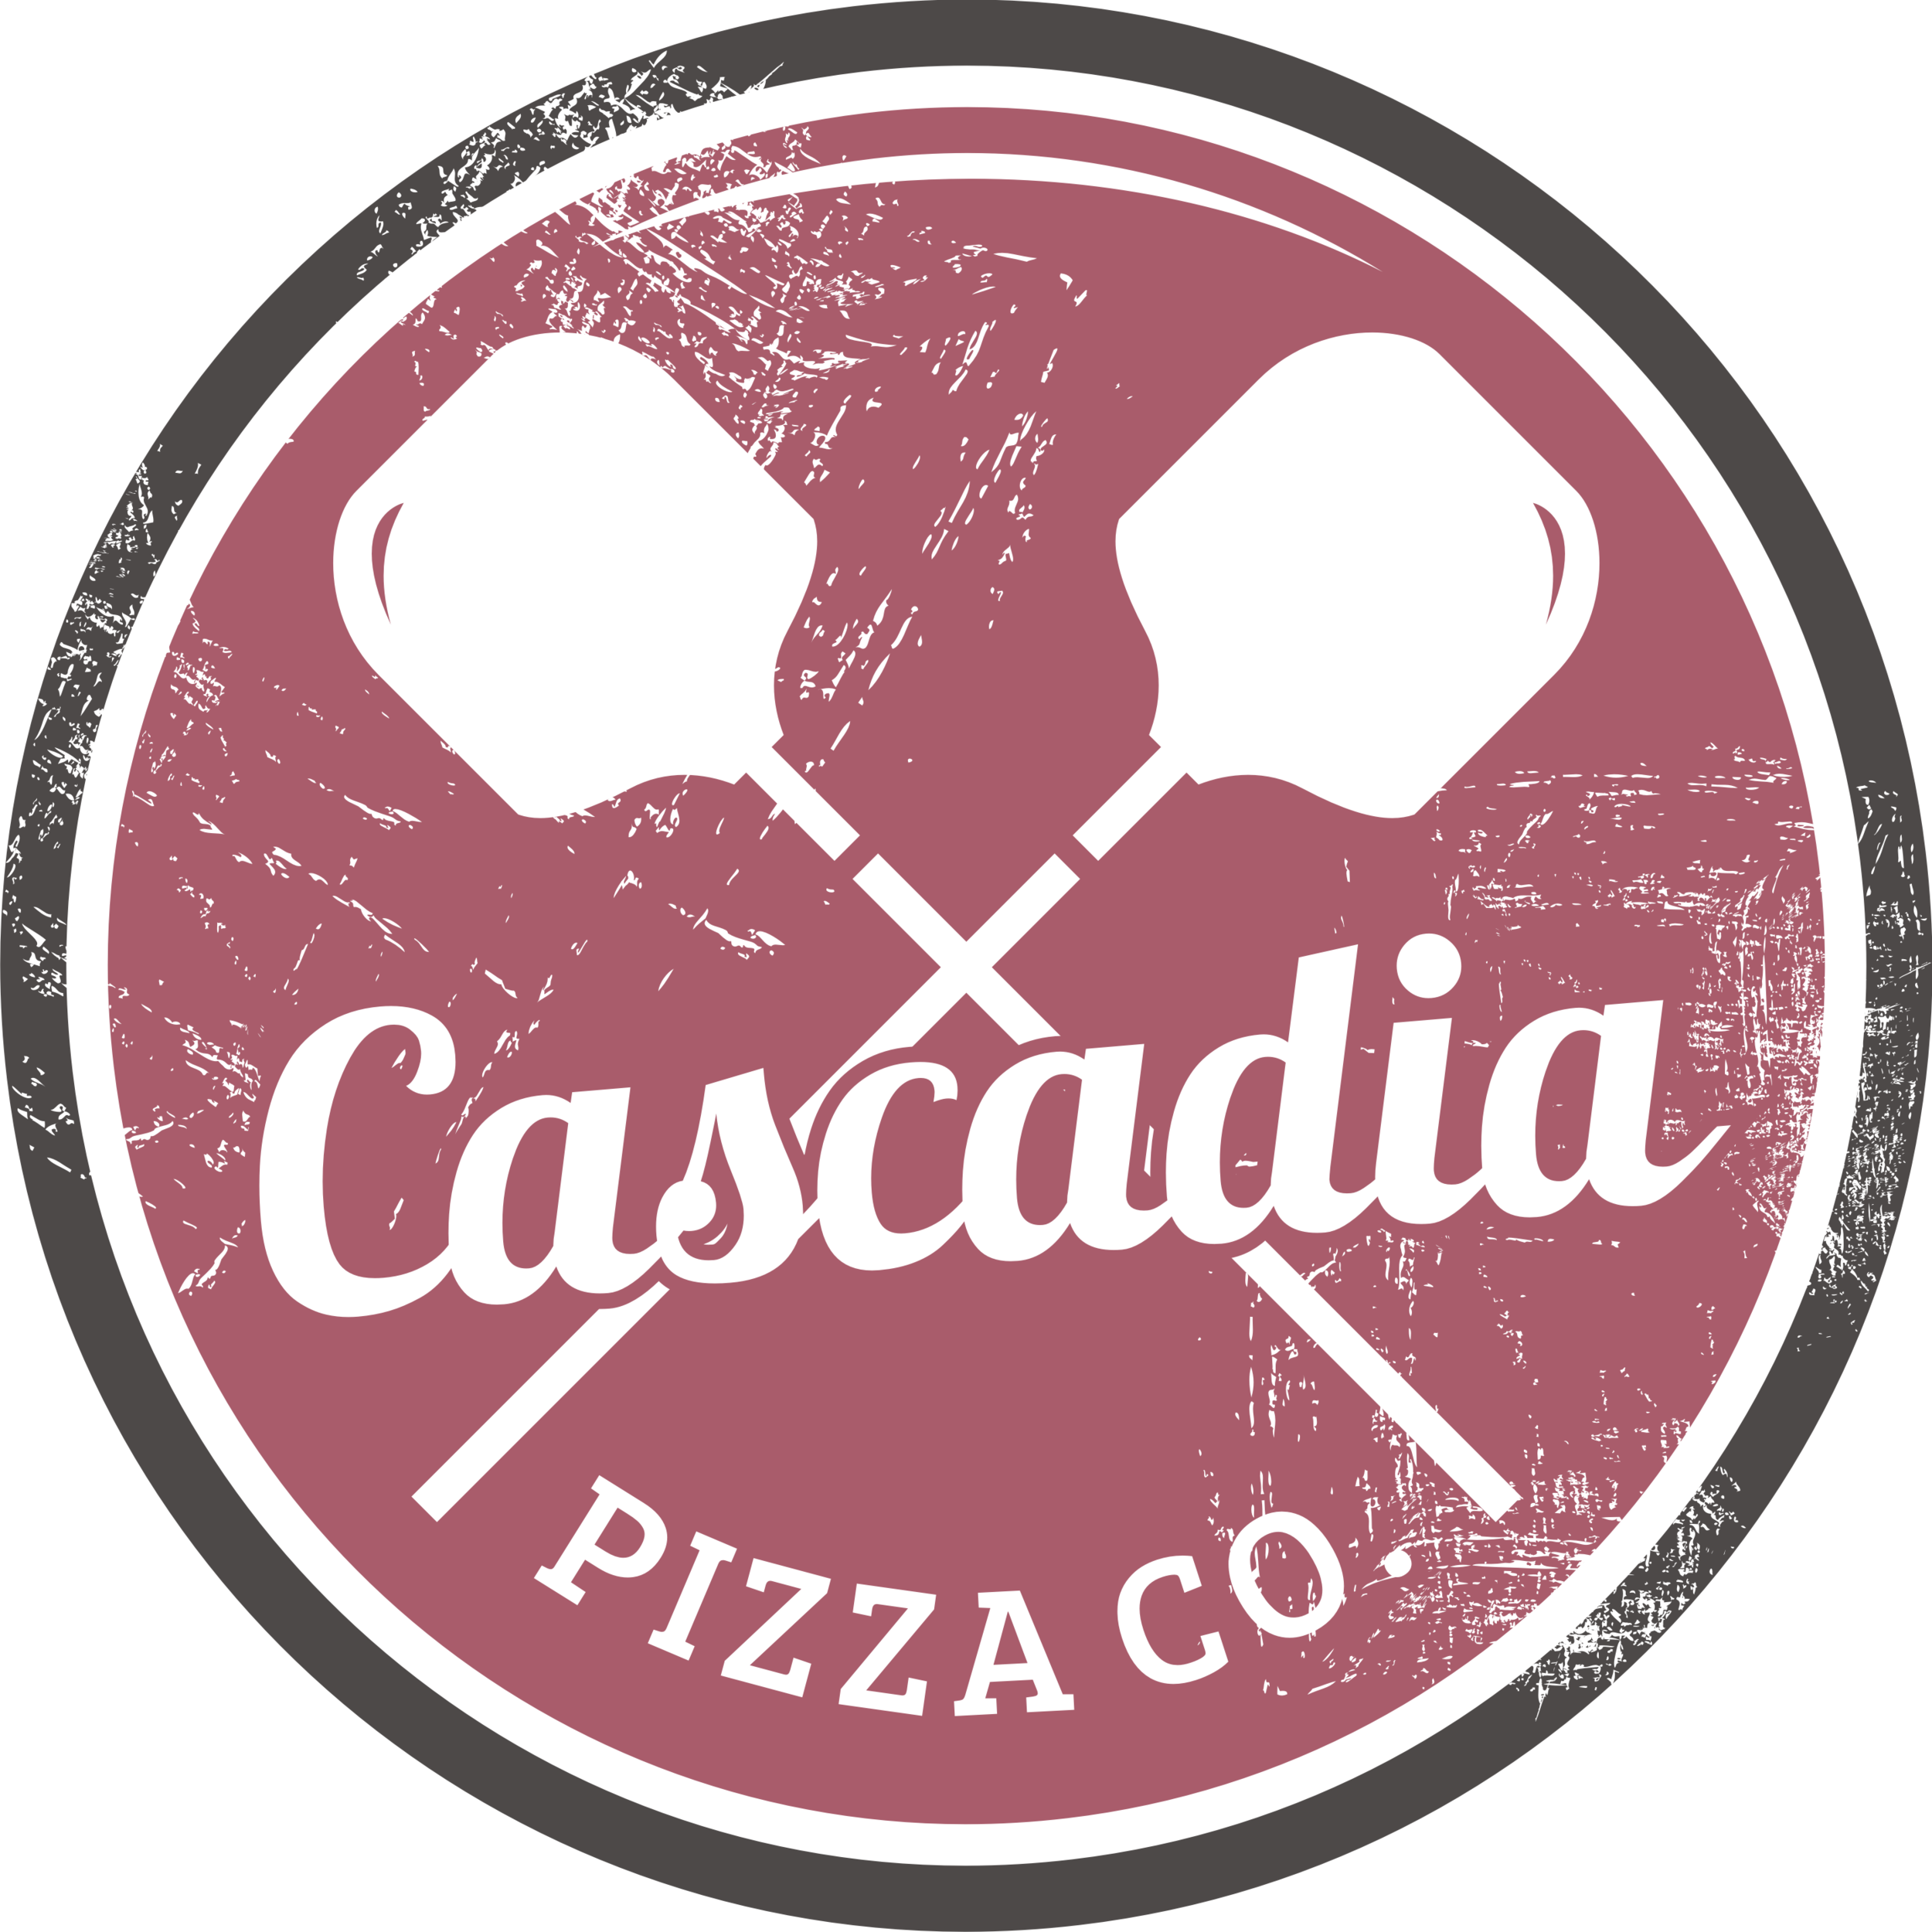 Cascadia Pizza Co.